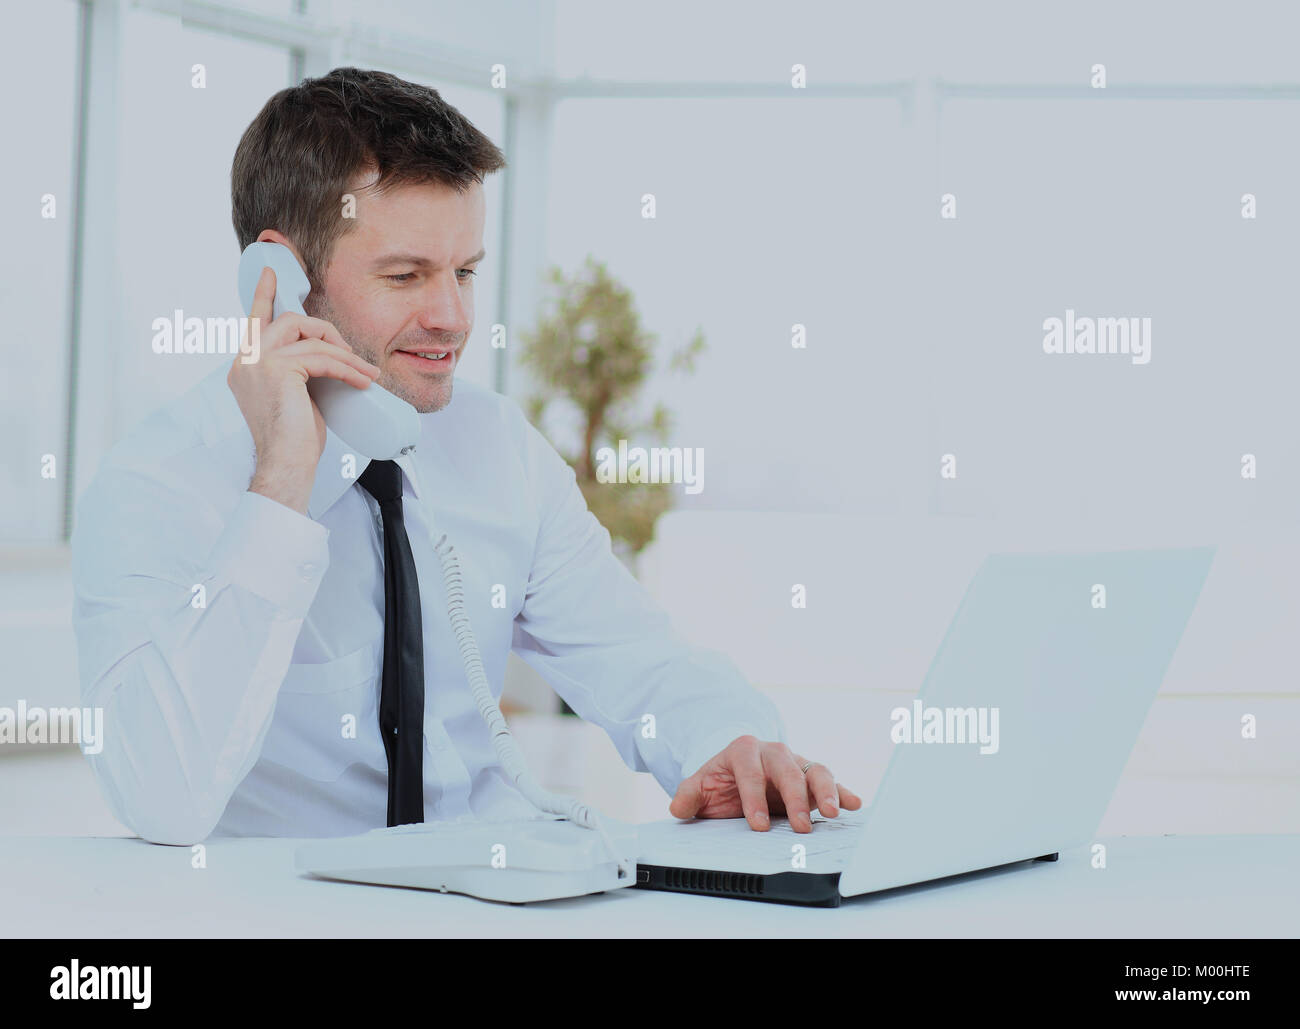 businessman working at the computer and talking on the phone. - Stock Image